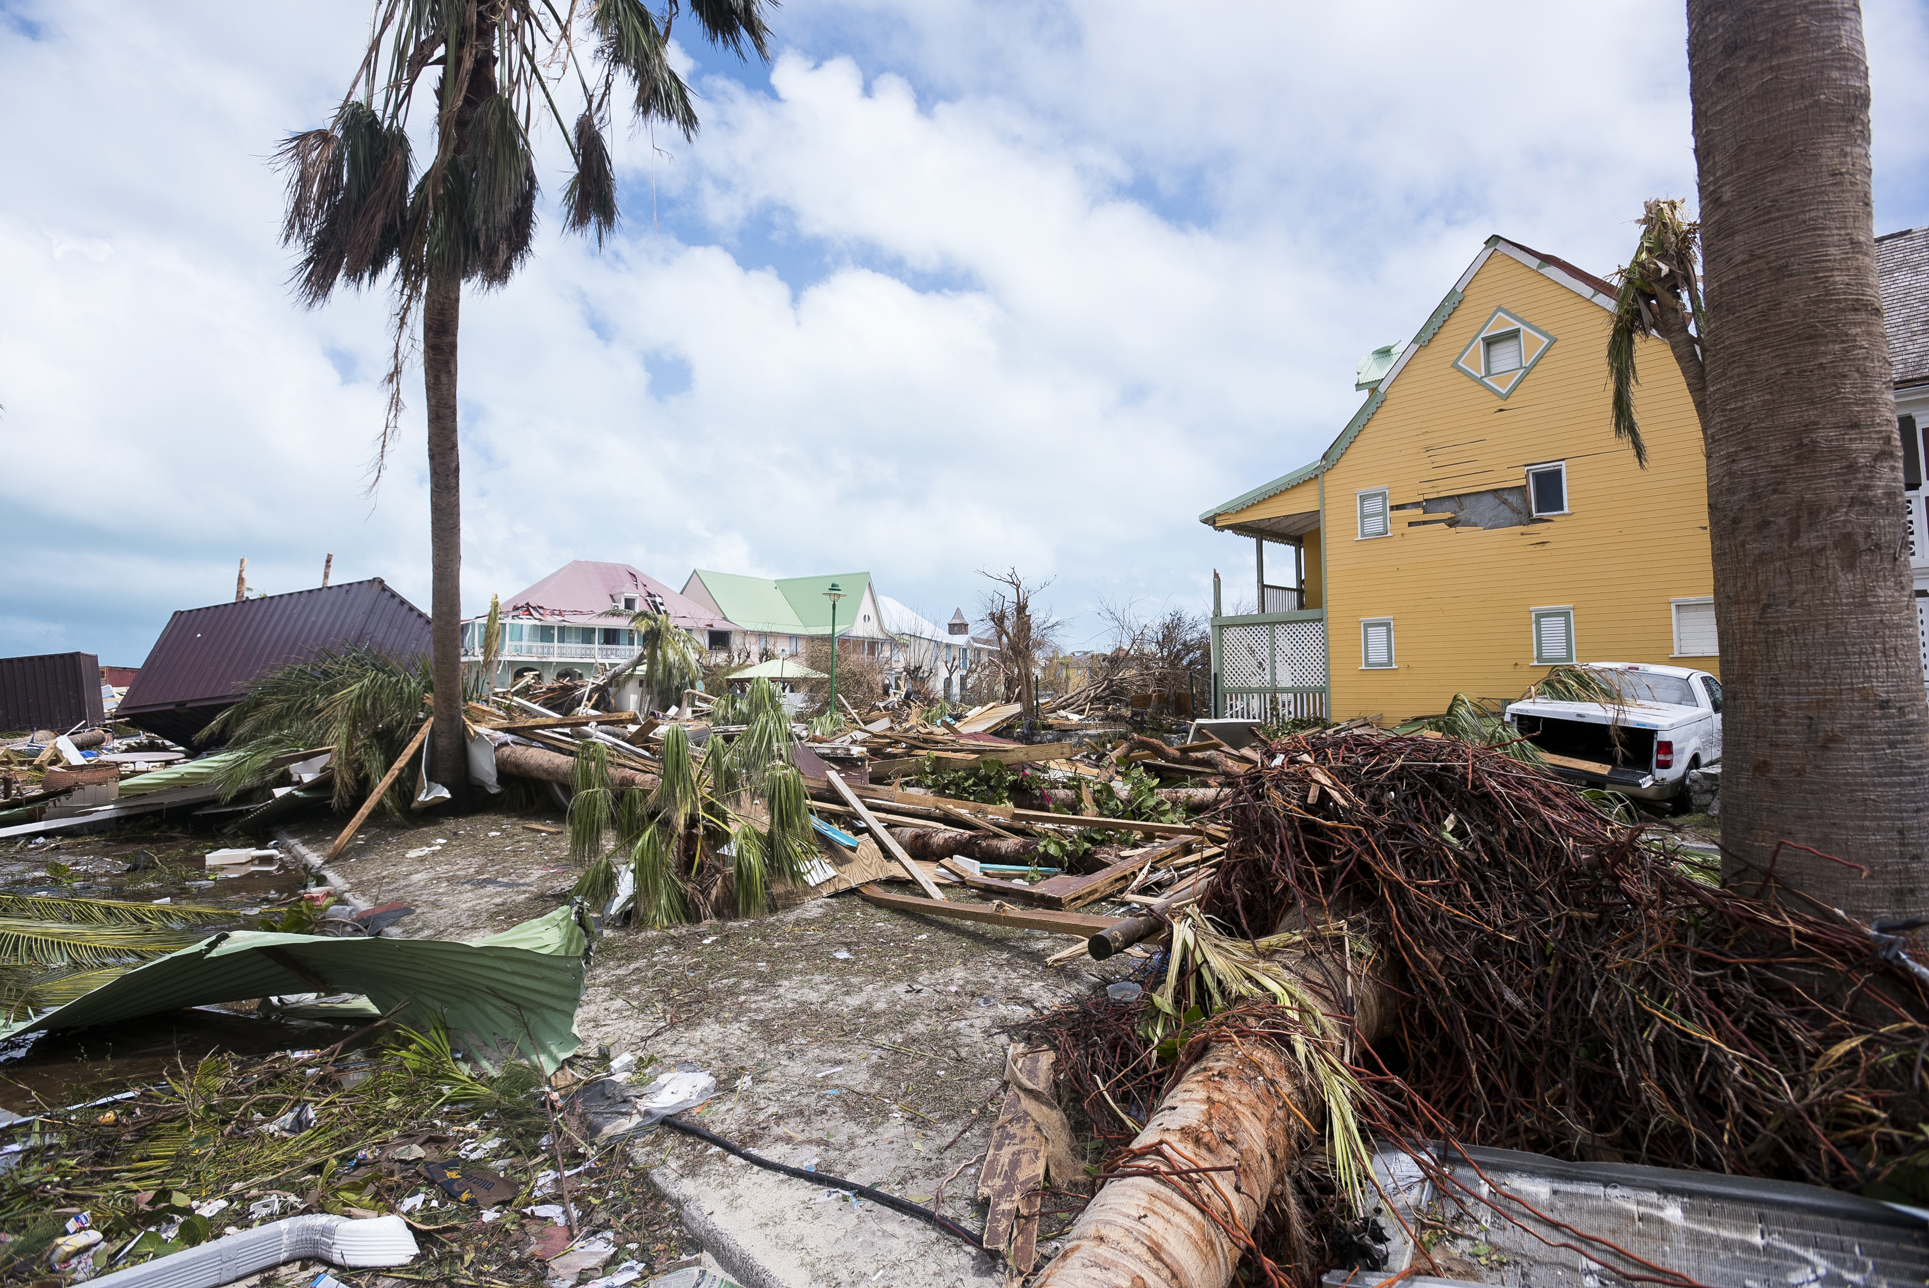 TOPSHOT - A photo taken on September 7, 2017 shows damage in Orient Bay on the French Carribean island of Saint-Martin, after the passage of Hurricane Irma. France, the Netherlands and Britain on September 7 rushed to provide water, emergency rations and rescue teams to territories in the Caribbean hit by Hurricane Irma, with aid efforts complicated by damage to local airports and harbours. The worst-affected island so far is Saint Martin, which is divided between the Netherlands and France, where French Prime Minister Edouard Philippe confirmed four people were killed and 50 more injured. / AFP PHOTO / Lionel CHAMOISEAU (Photo credit should read LIONEL CHAMOISEAU/AFP/Getty Images)